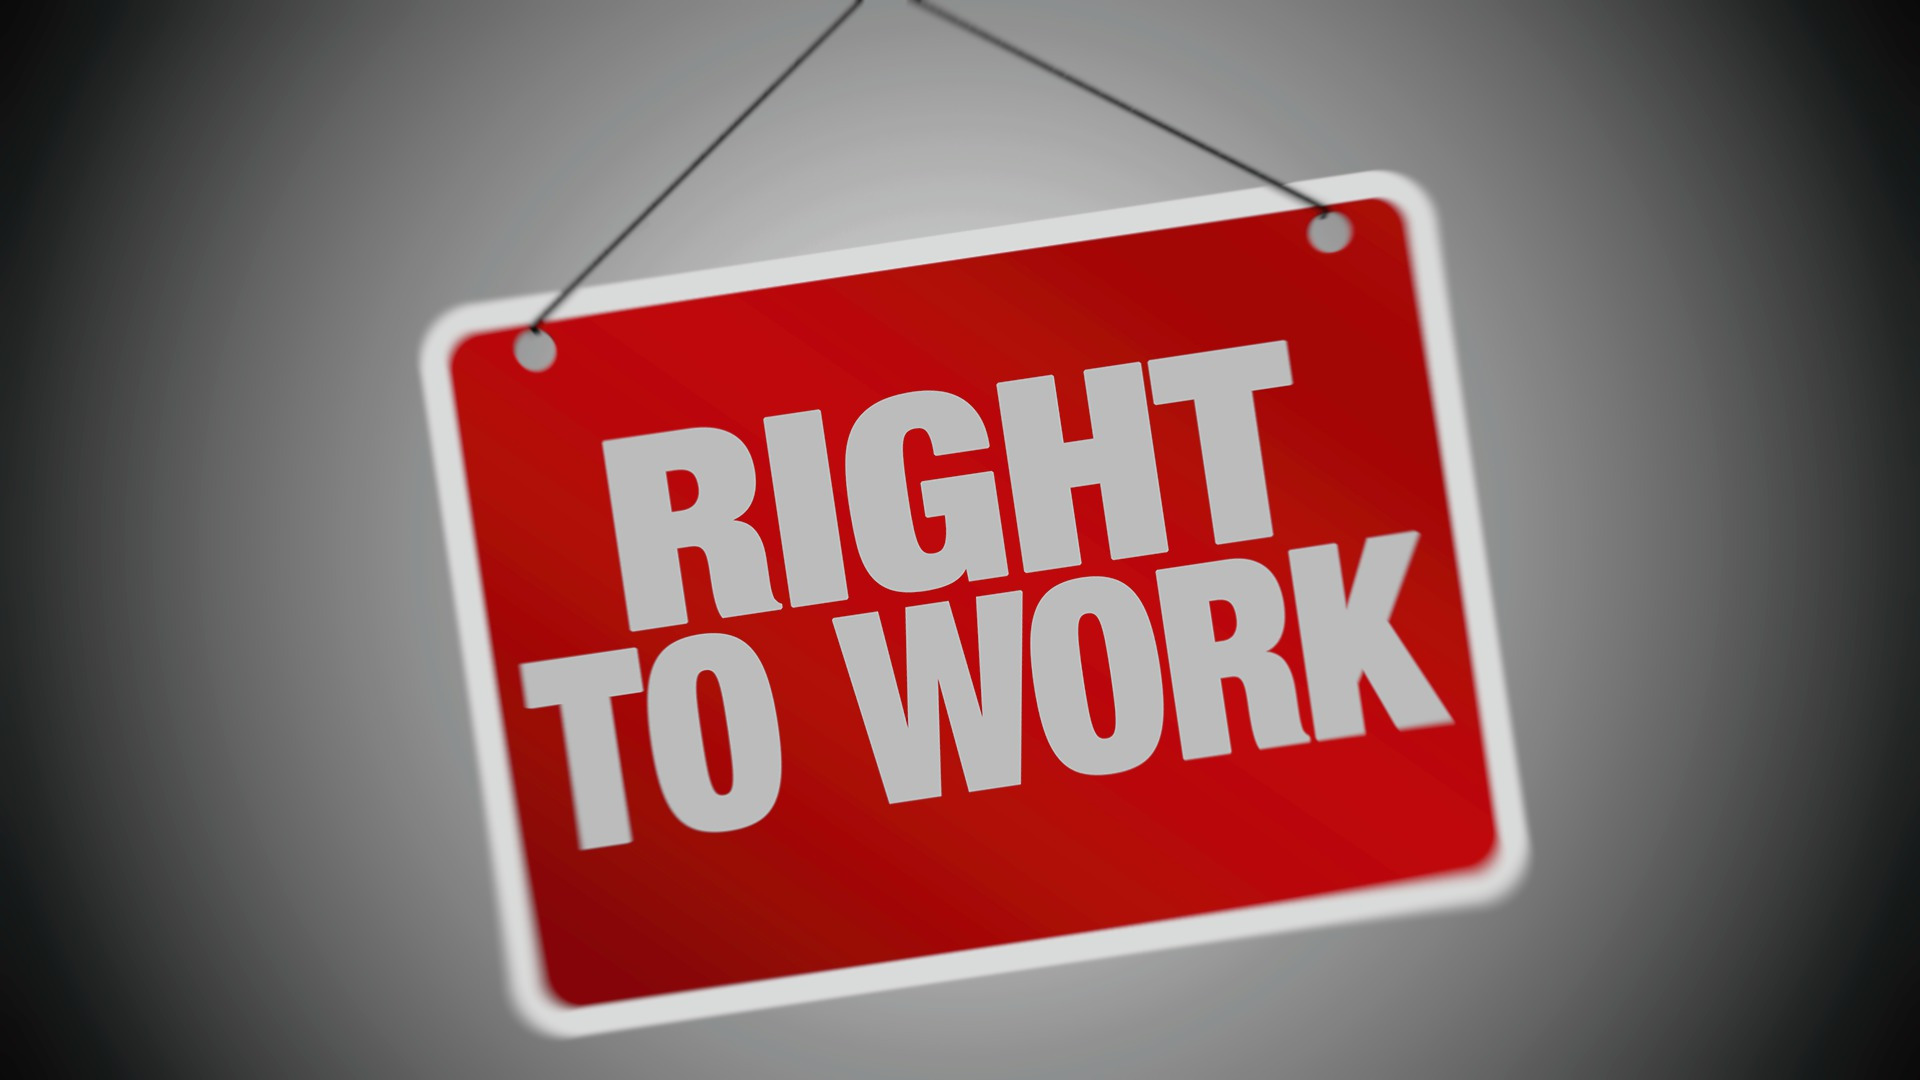 Doesn't everyone have a right to work? What the laws are about.